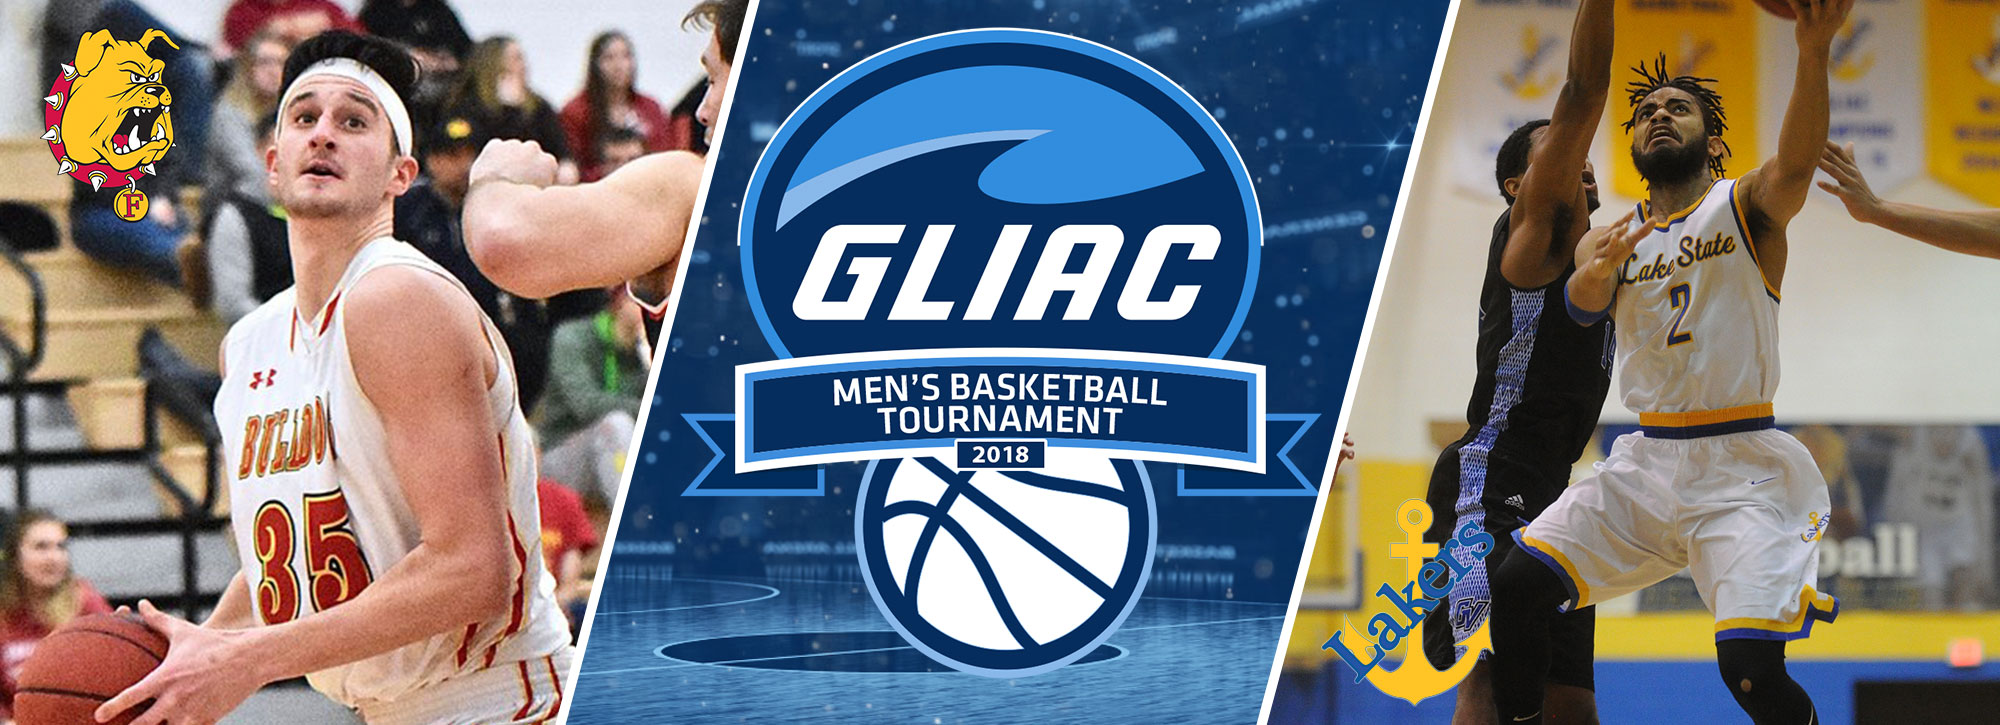 Ferris State, Lake State Set for 2018 #GLIACMBB Tournament Title Tilt